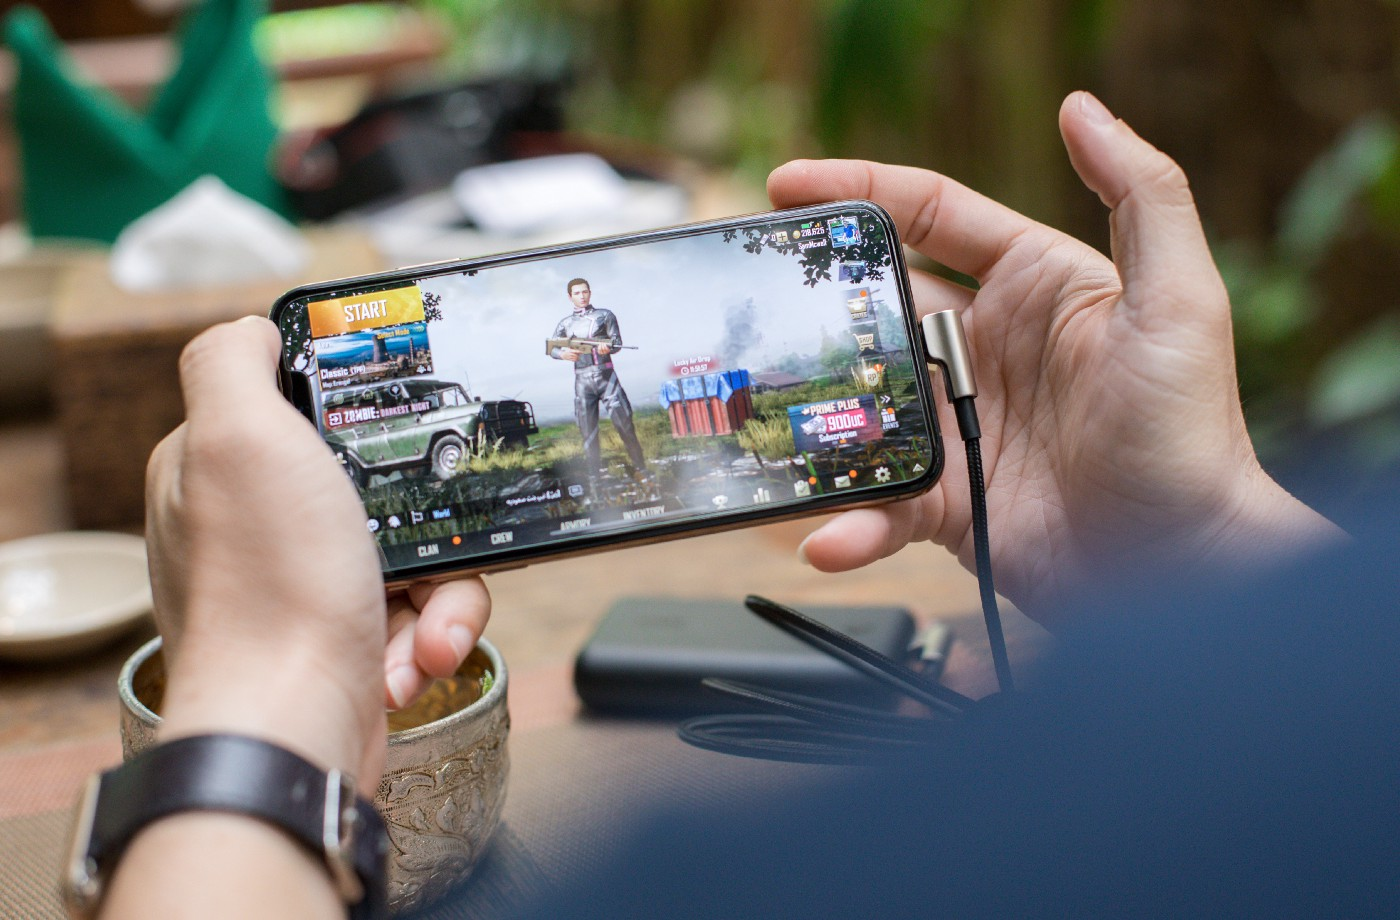 Hands holding a phone in landscape, playing a first person shooter game.